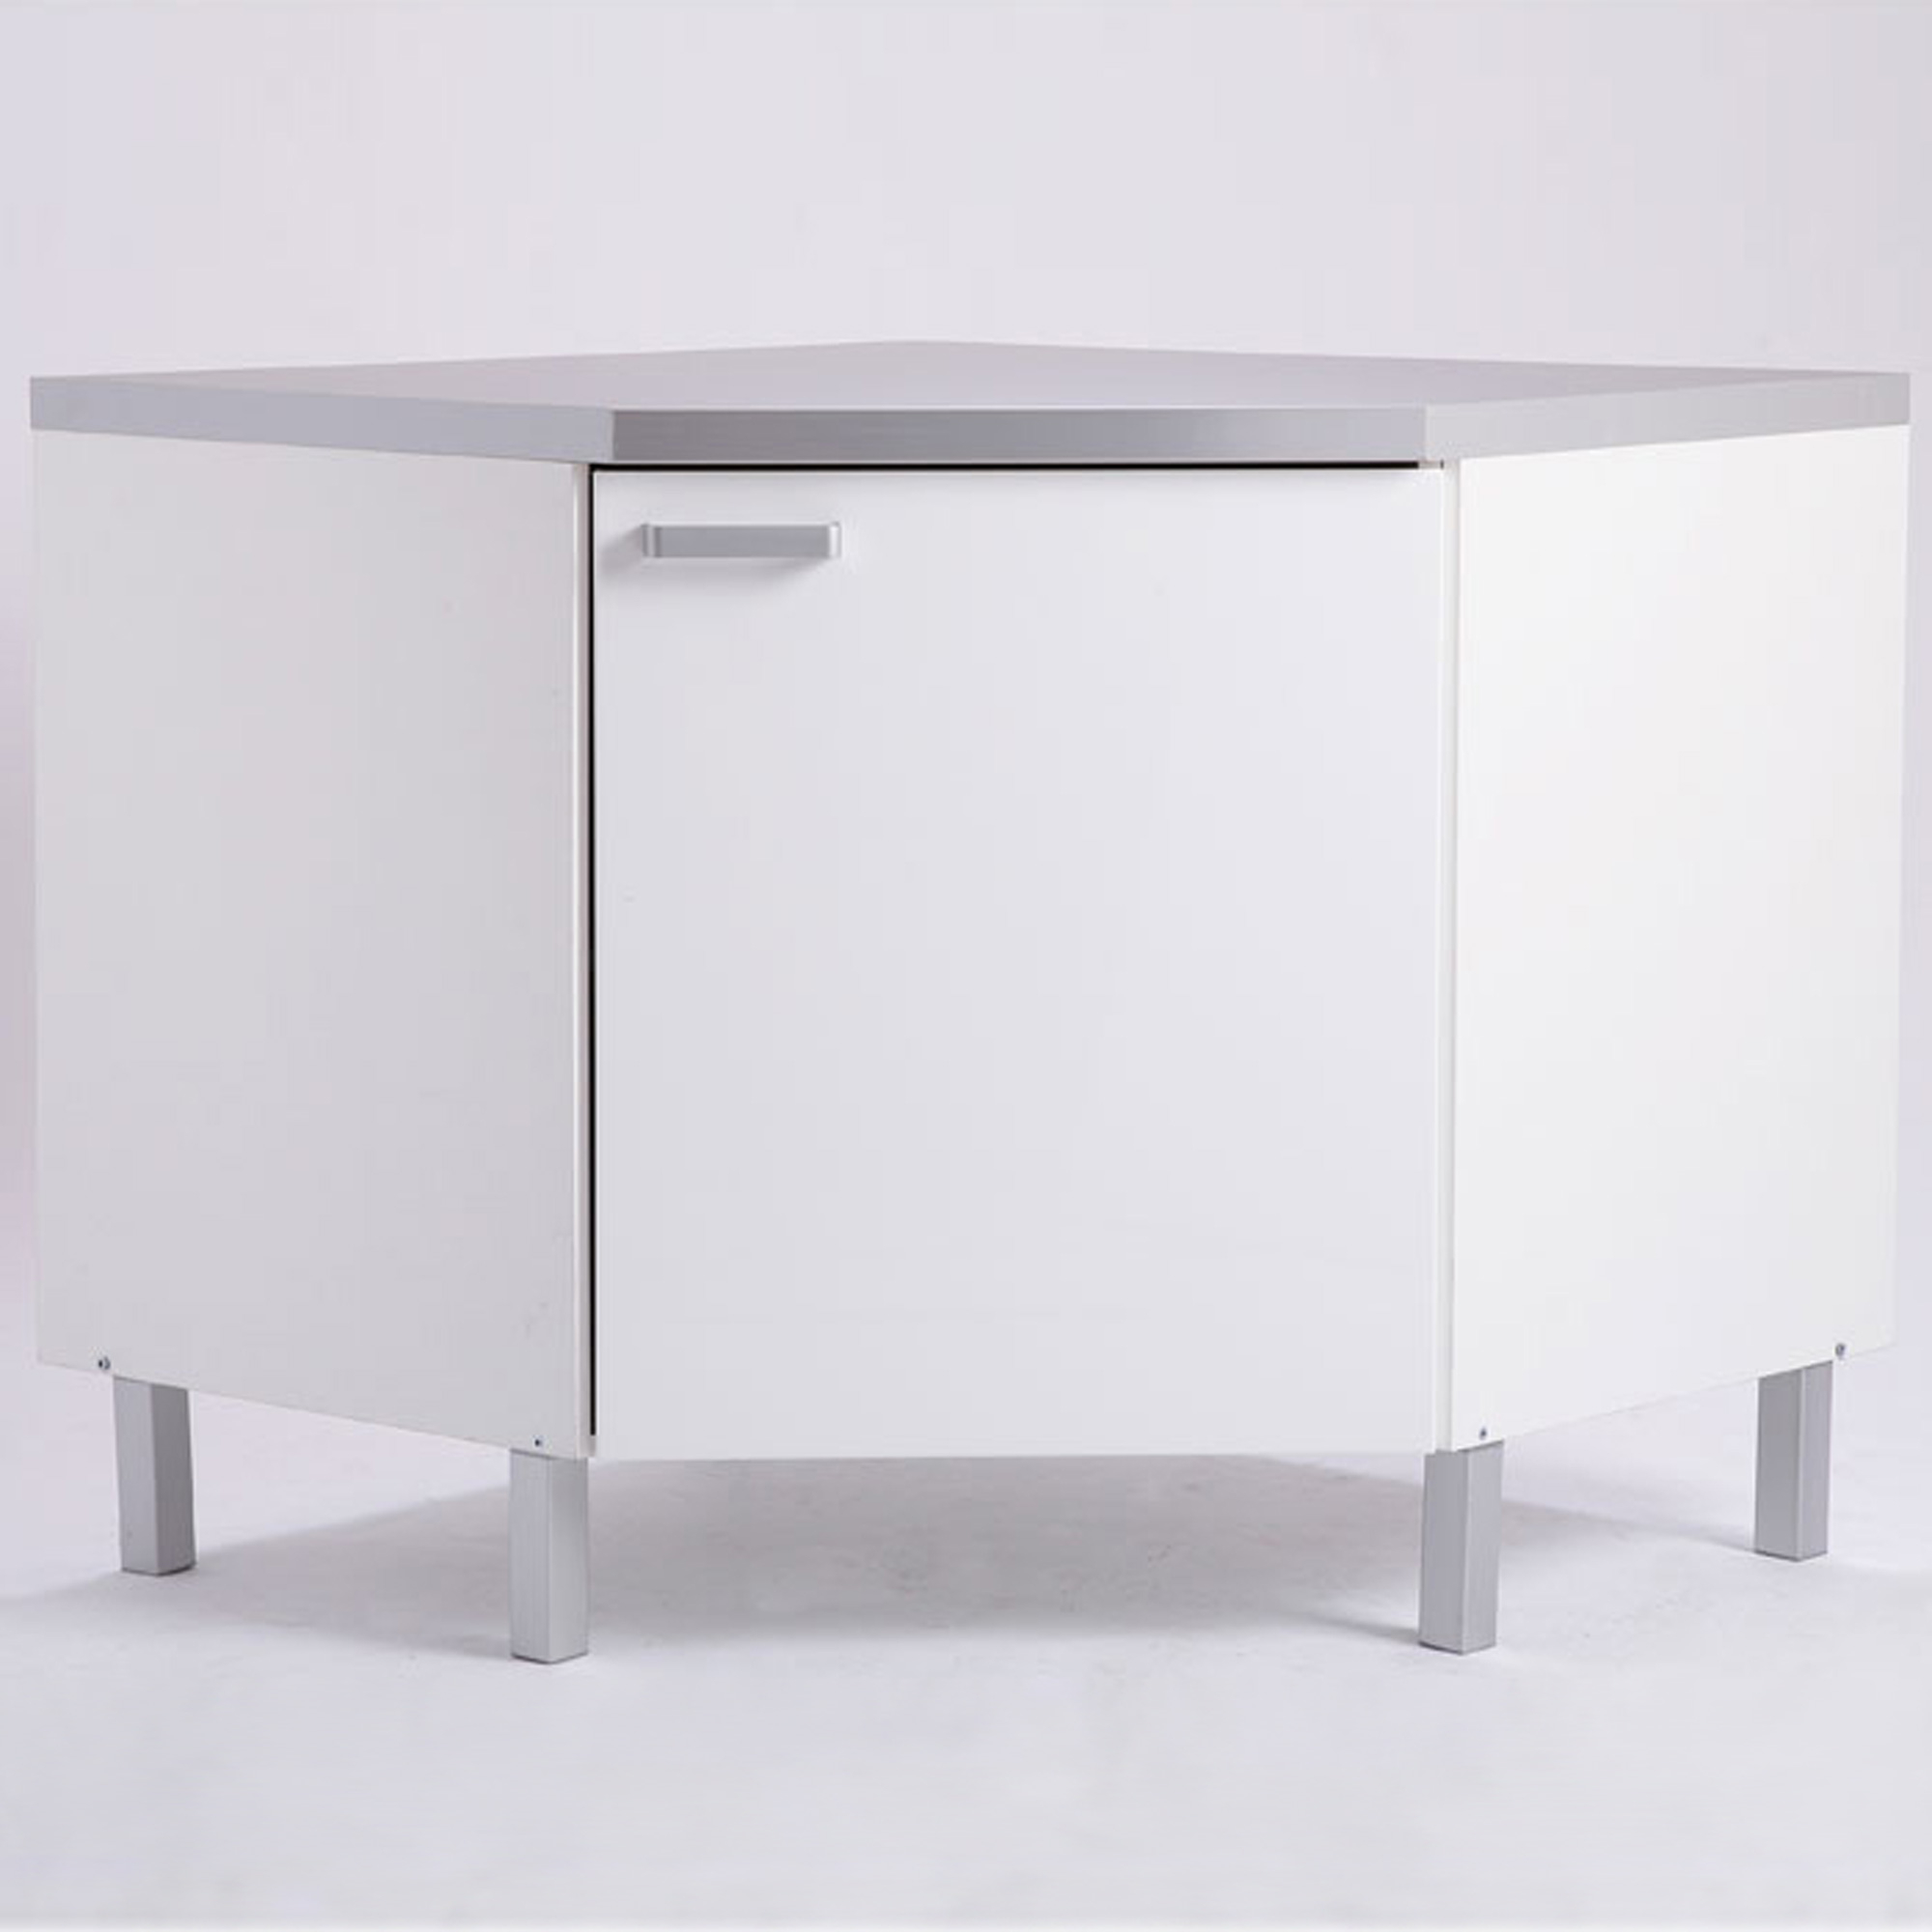 petit meuble tv alinea meuble d angle blanc. Black Bedroom Furniture Sets. Home Design Ideas